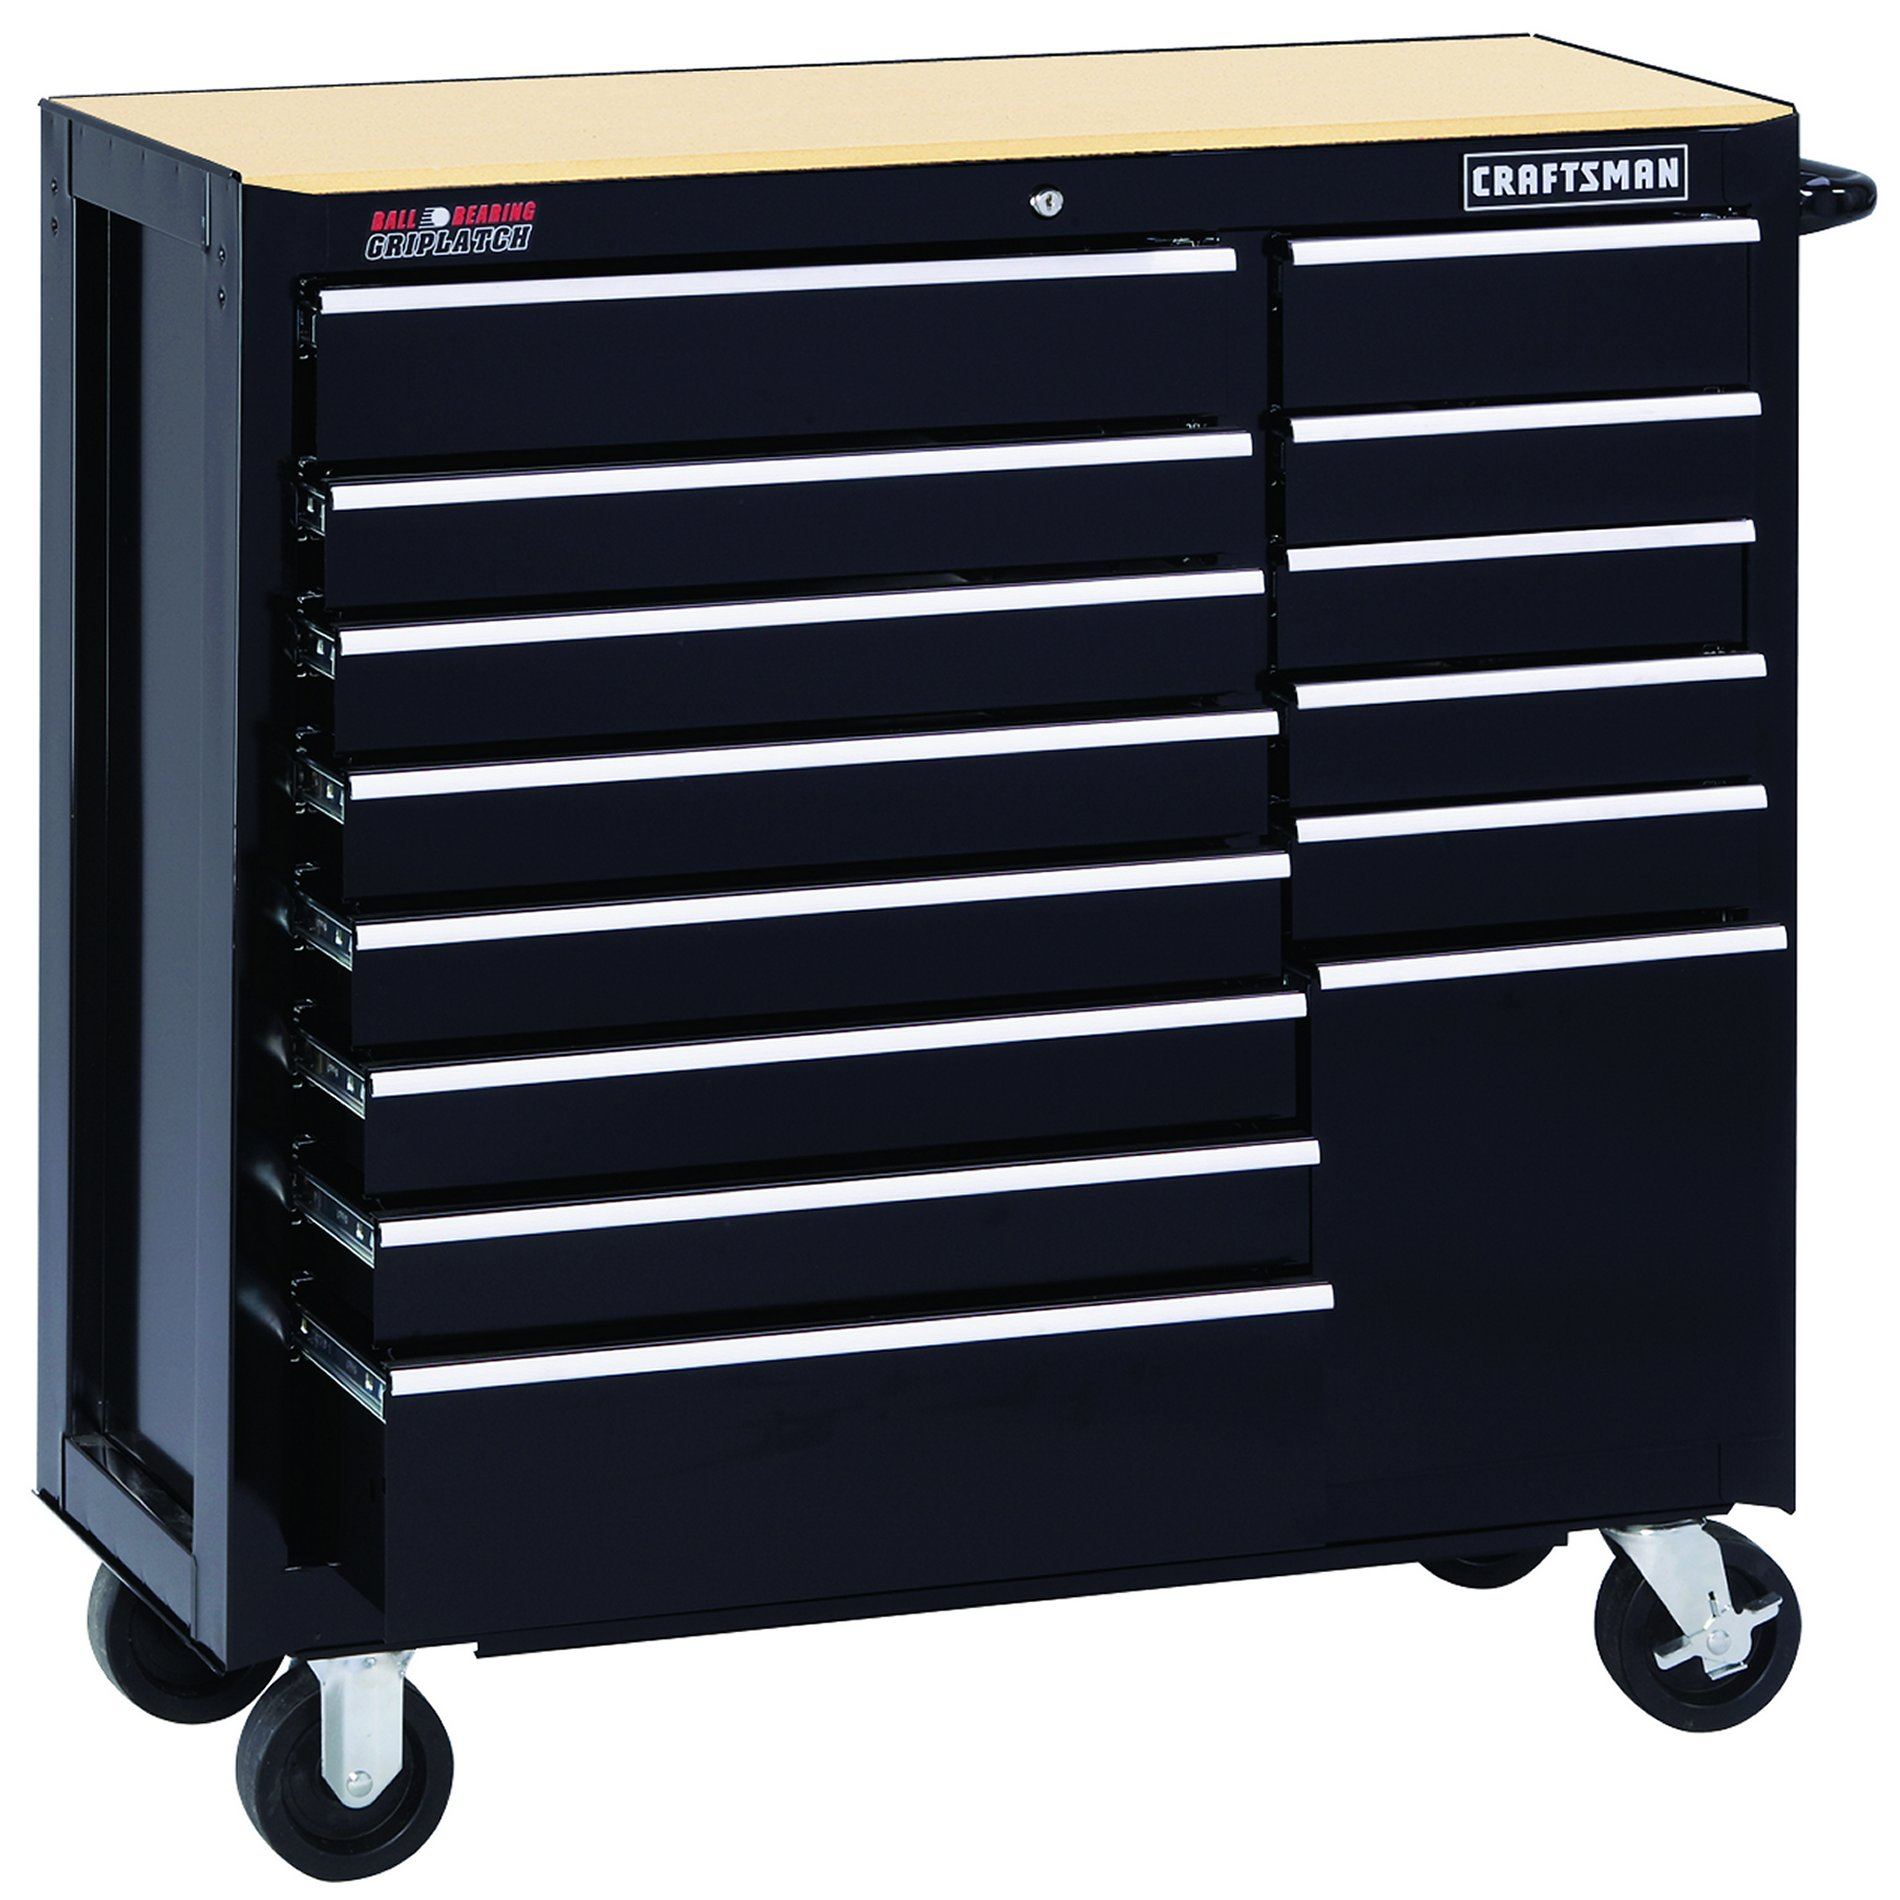 "Craftsman 40"""" Wide 14-Drawer Ball-Bearing Griplatch Tool Cart - Black"